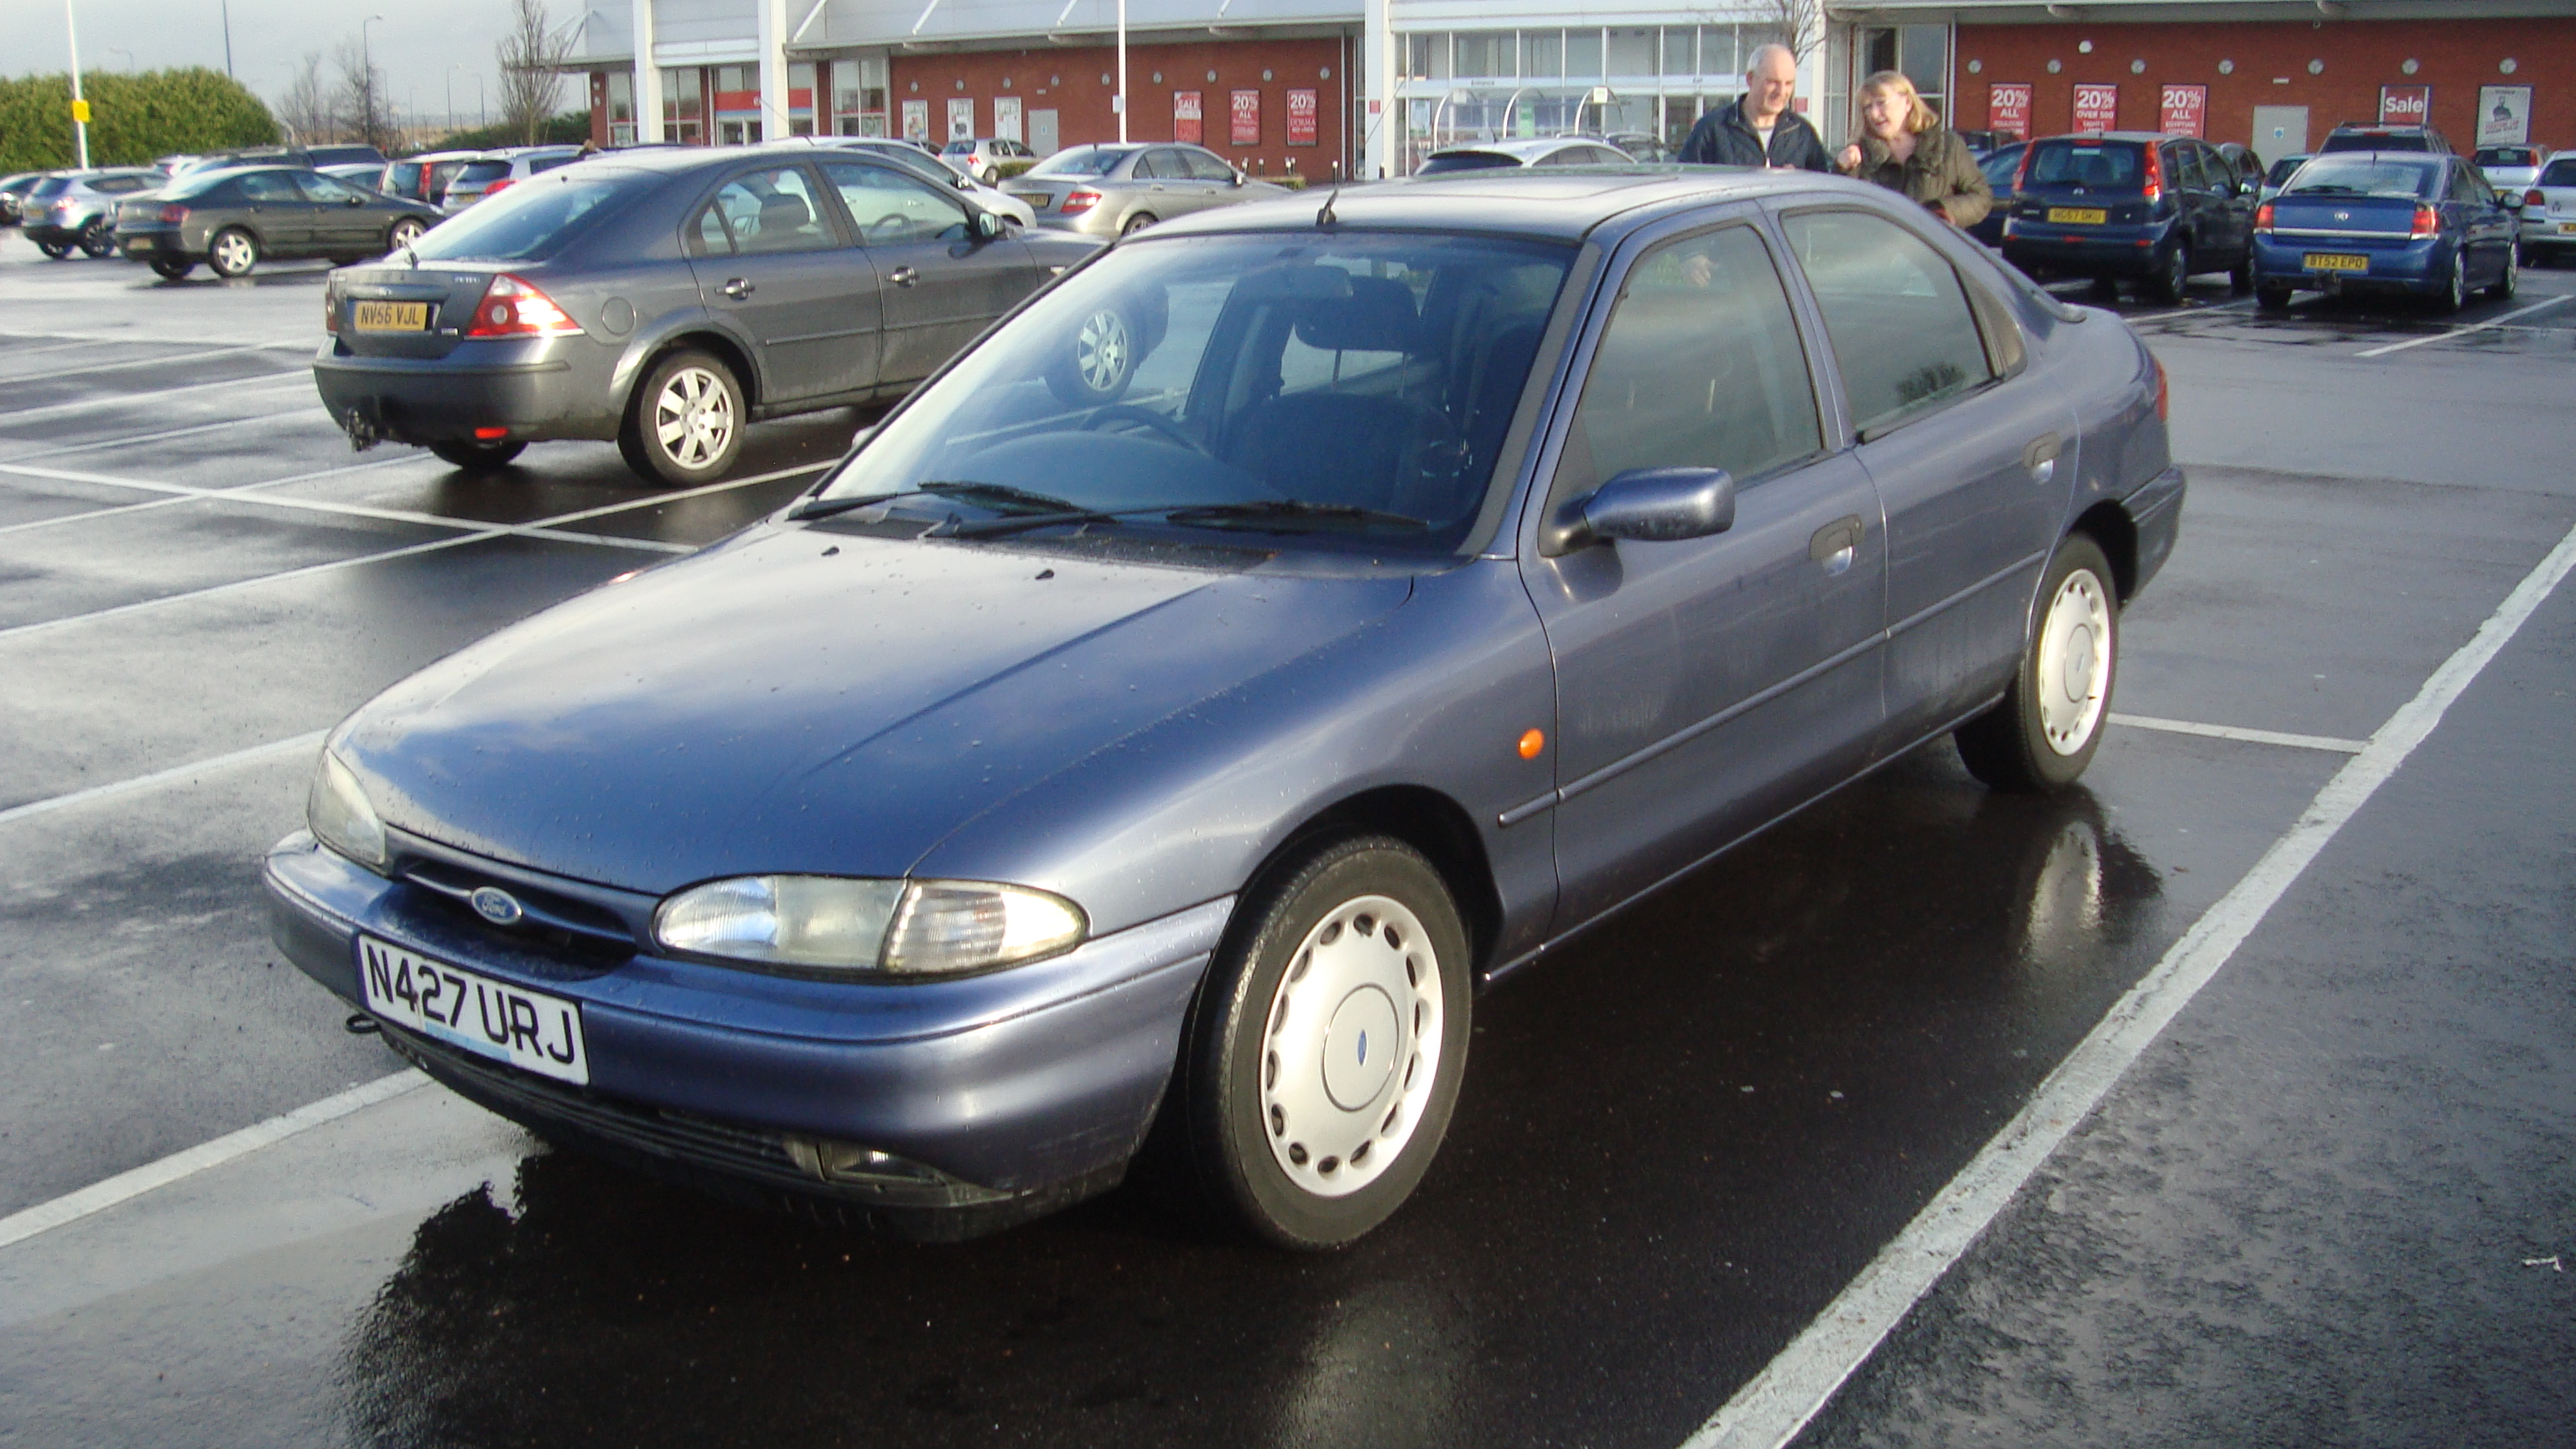 Ford Mondeo 2015 White >> File:1995 Ford Mondeo 1.8 Verona (16273503766).jpg - Wikimedia Commons